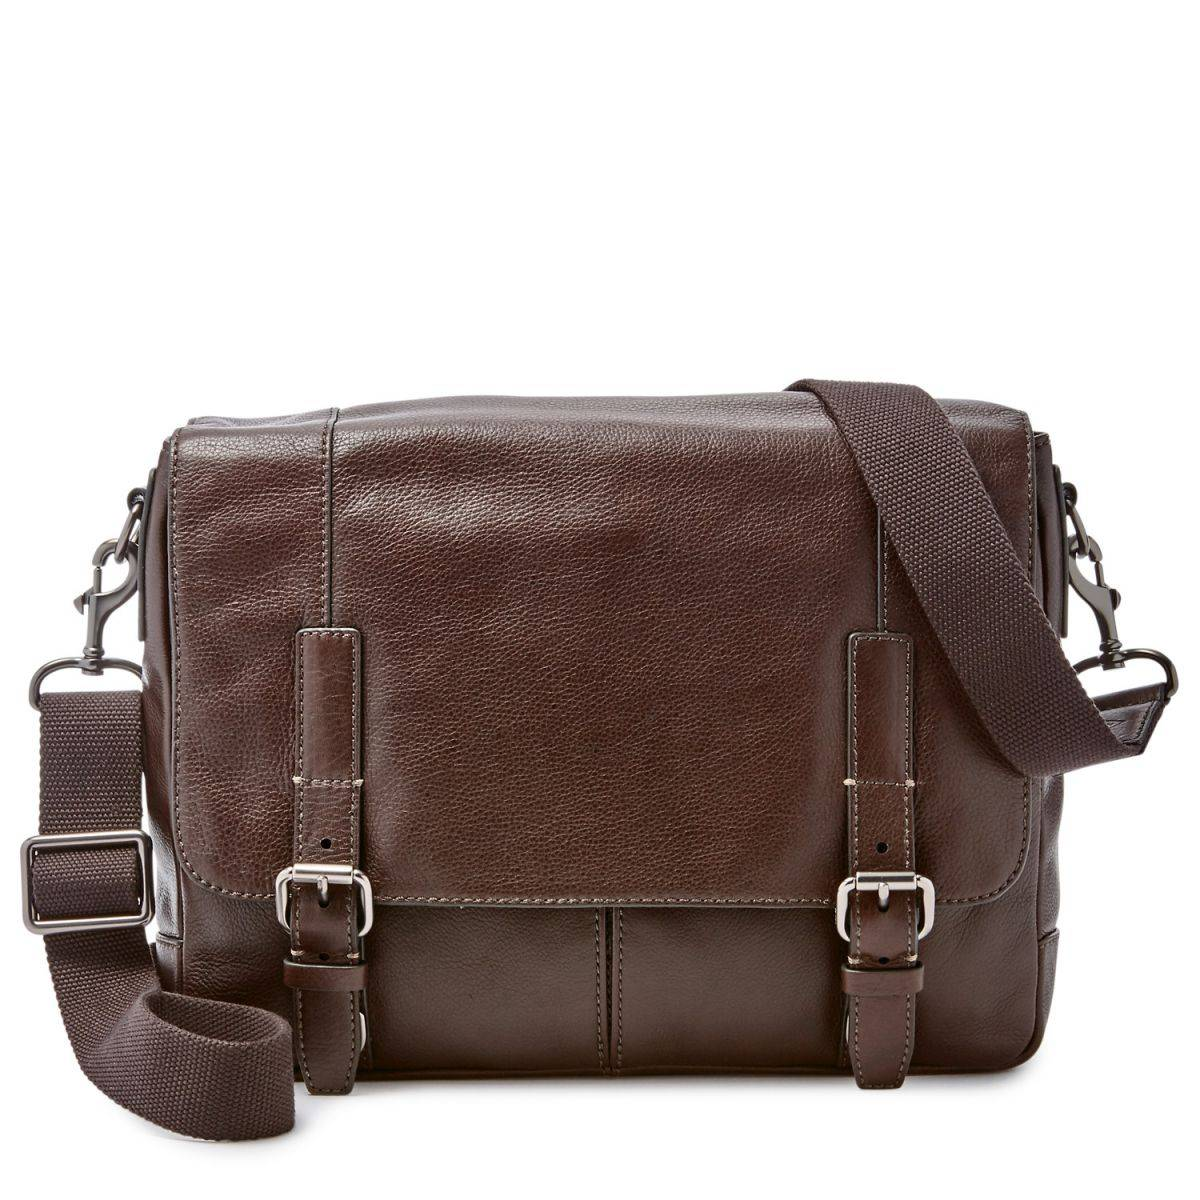 Cuir Homme Fossil Sac Fossil sac Bikkembergs sac D9e2YWEIH